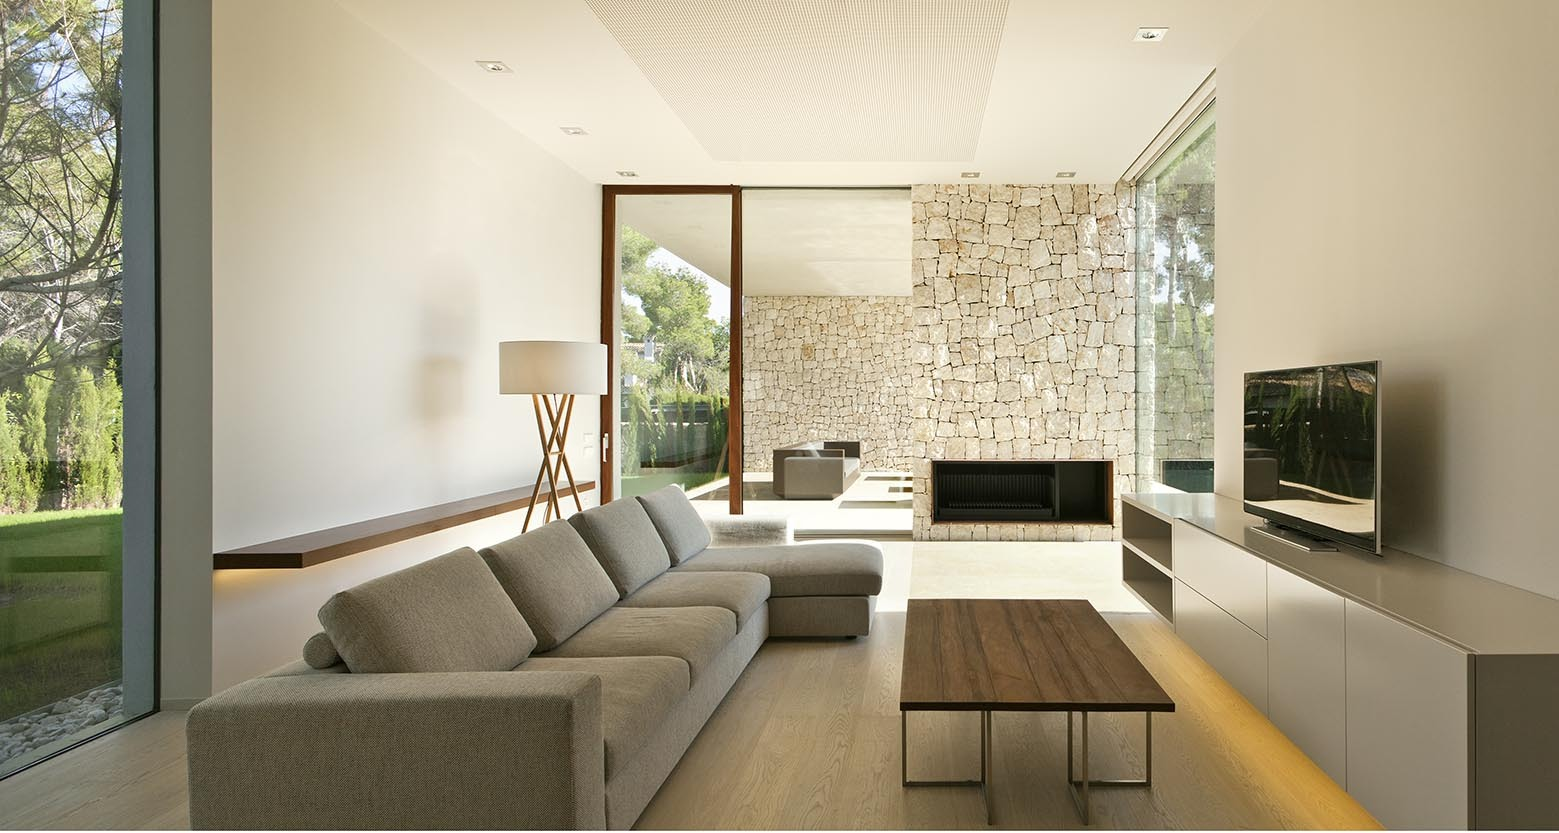 El bosque house by ramon esteve in valencia spain - Ramon esteve estudio ...